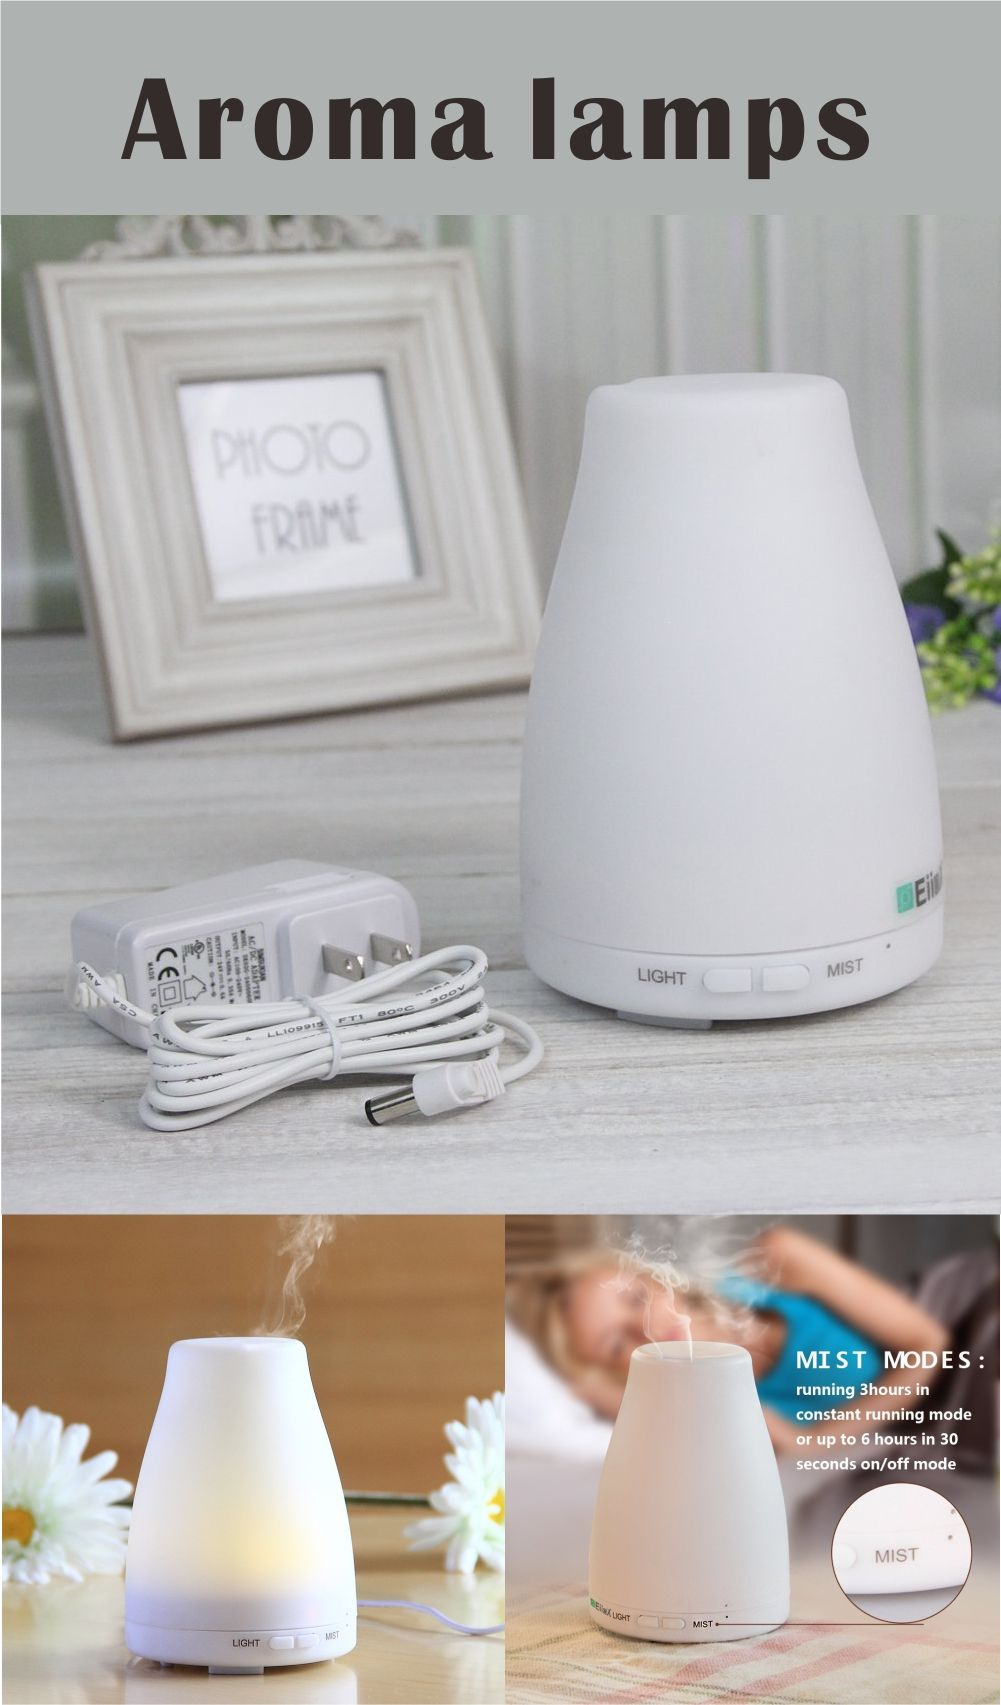 Aroma Air Mist Purifier Cool Humidifier Spa Vapor with